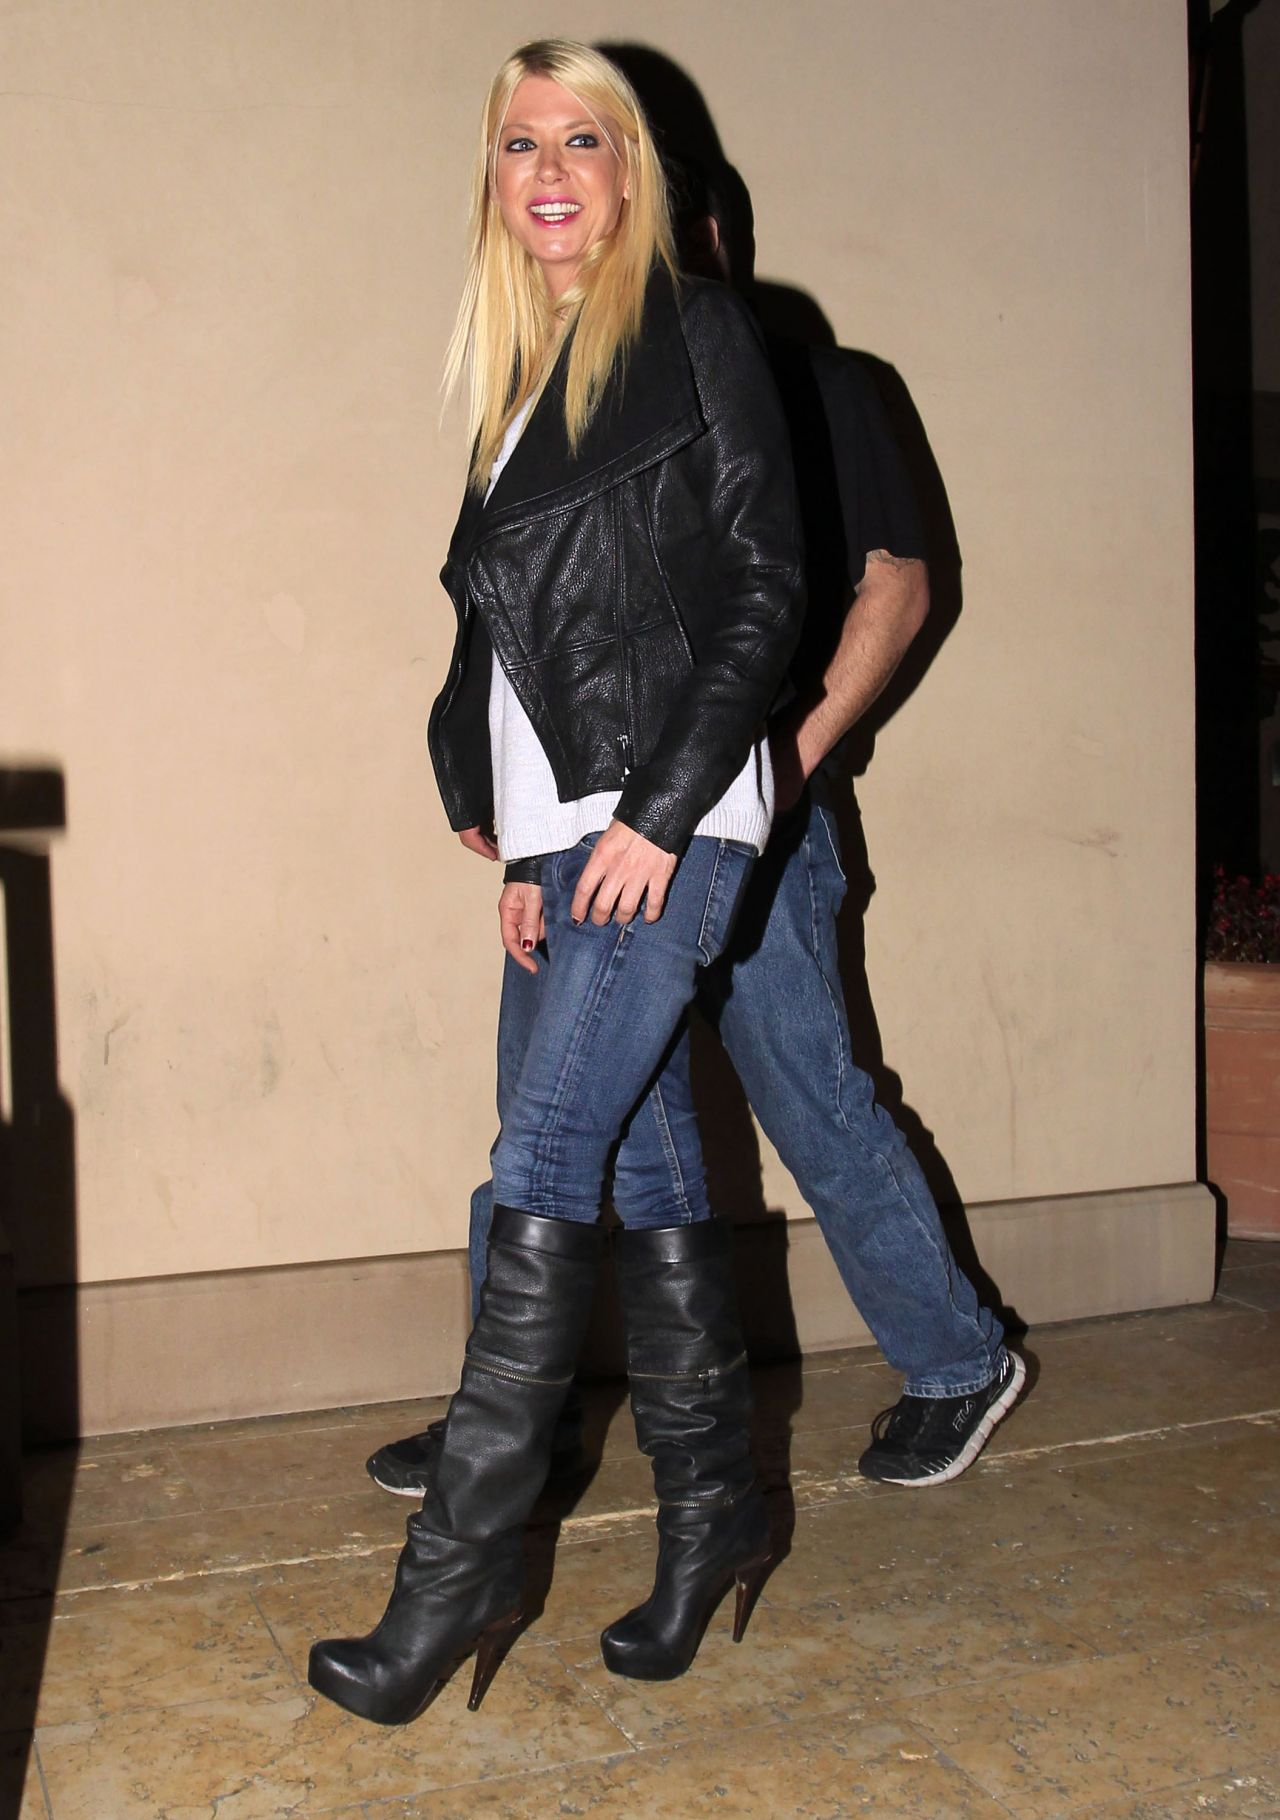 Tara Reid In Jeans And Knee High Boots At Bouchon In